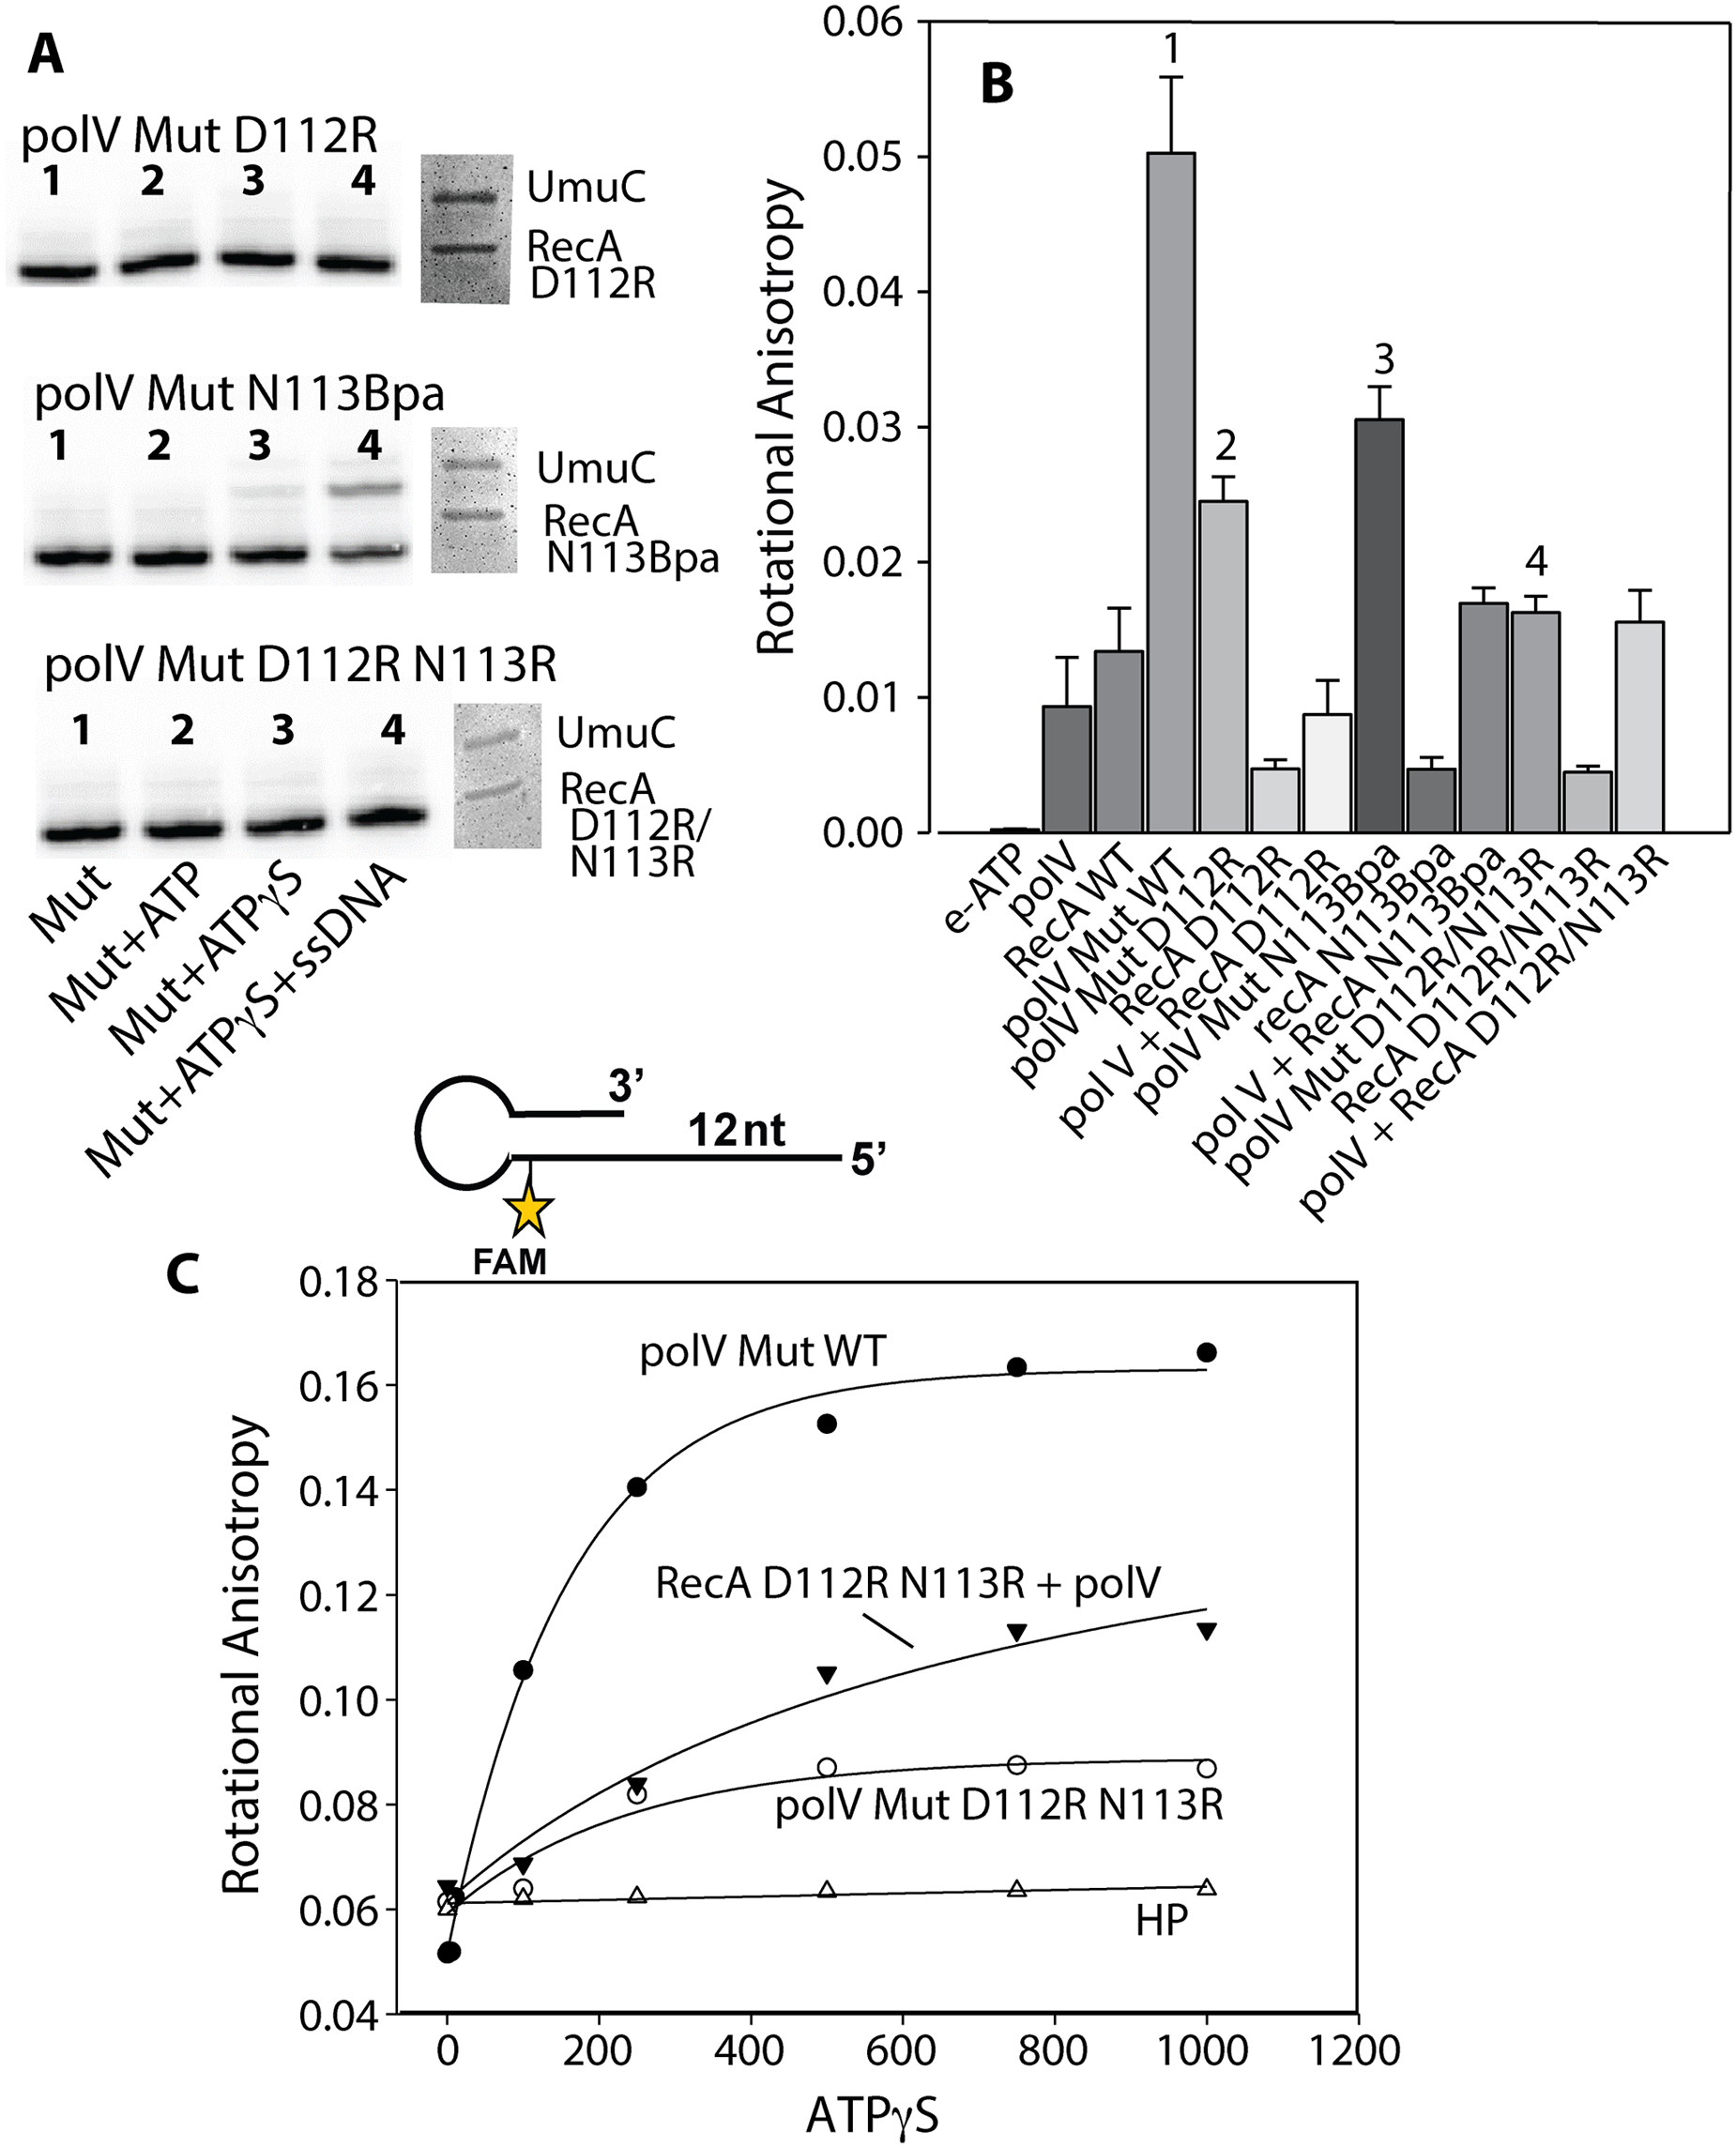 Defining the step in the pol V activation pathway that is affected by RecA D112R N113R.